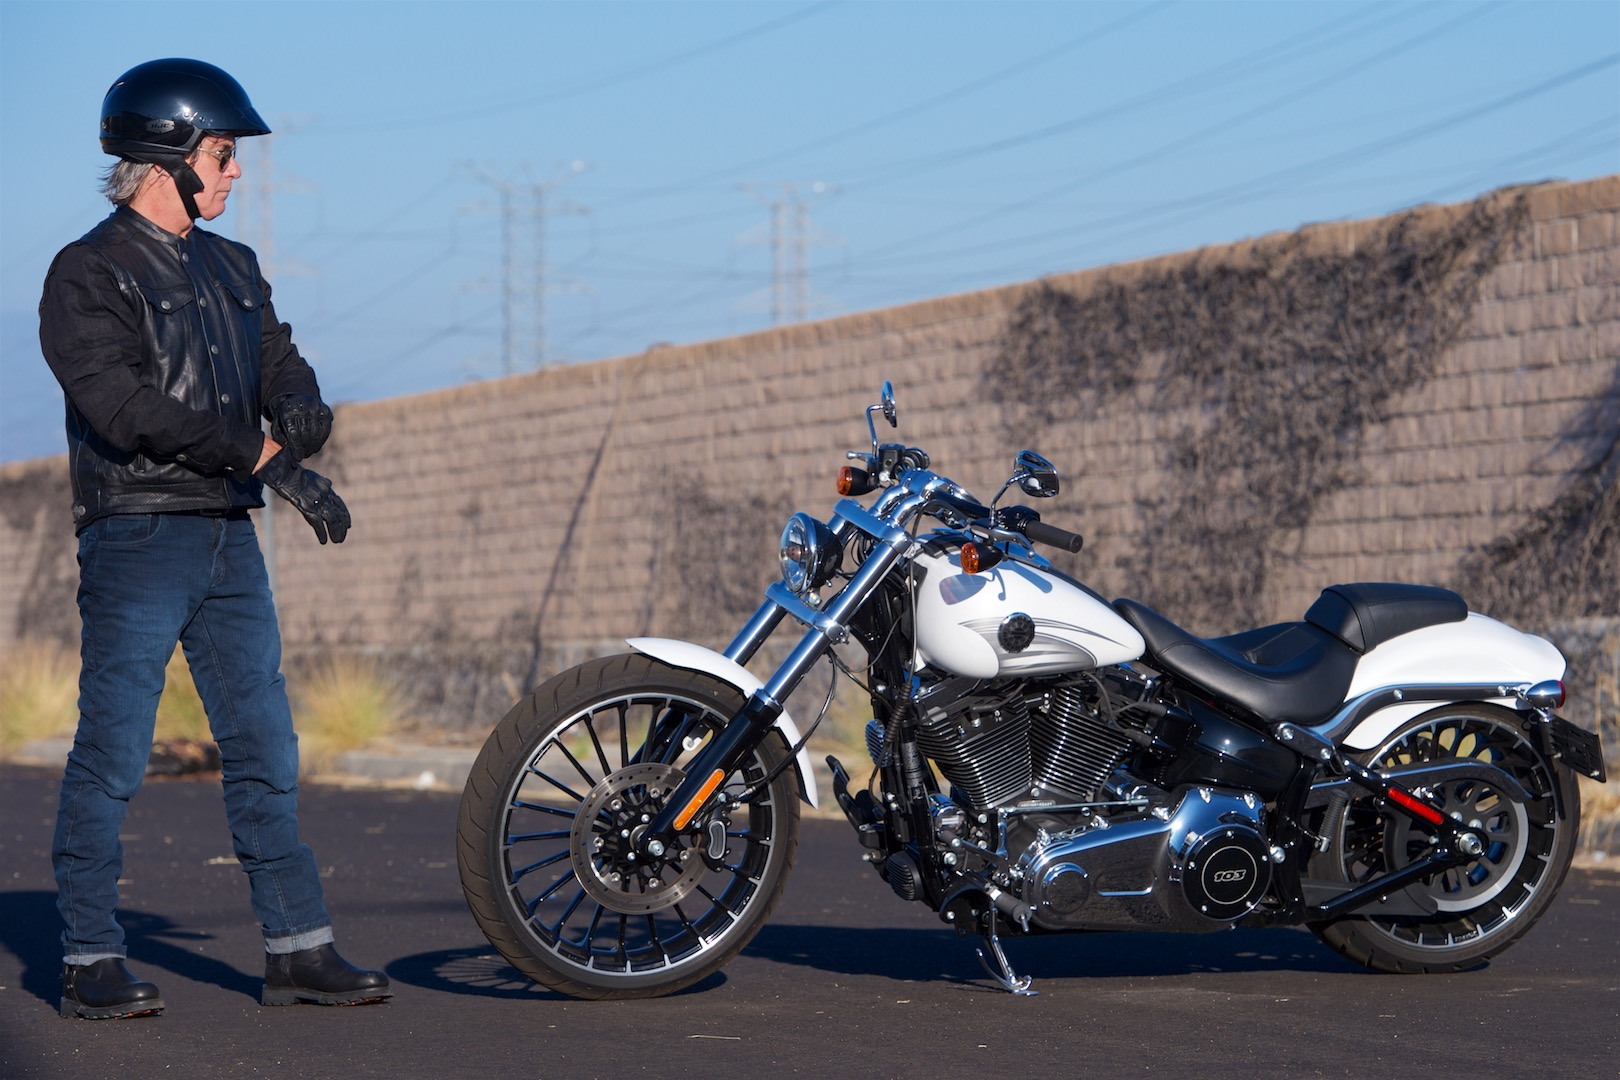 2017 harley-davidson softail breakout review | go straight, young man